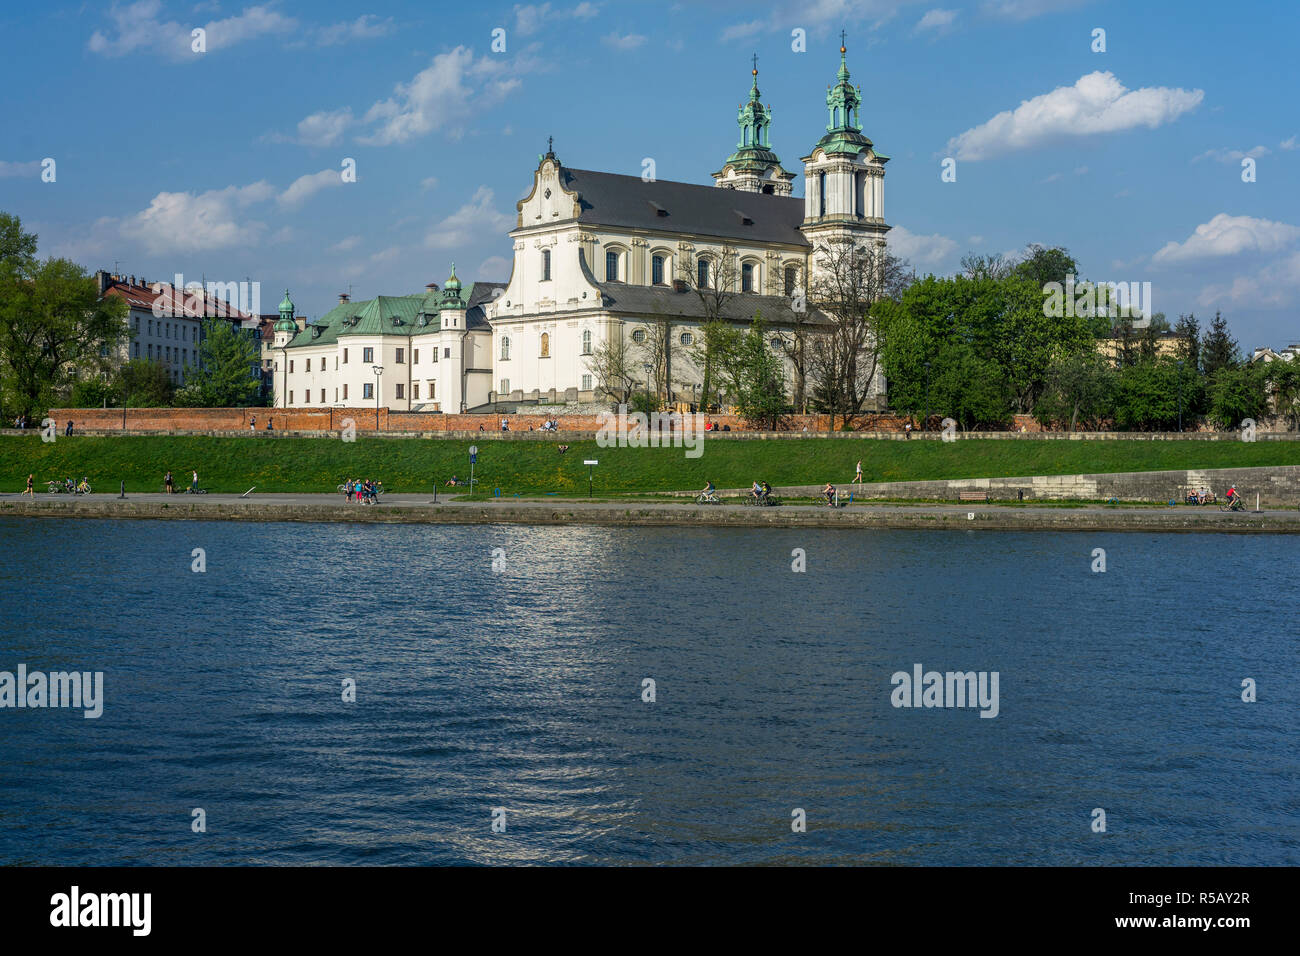 Church of St Michael the Archangel and St Stanislaus Bishop and Martyr and Pauline Fathers Monastery, Skałka, Kraków, Poland - Stock Image